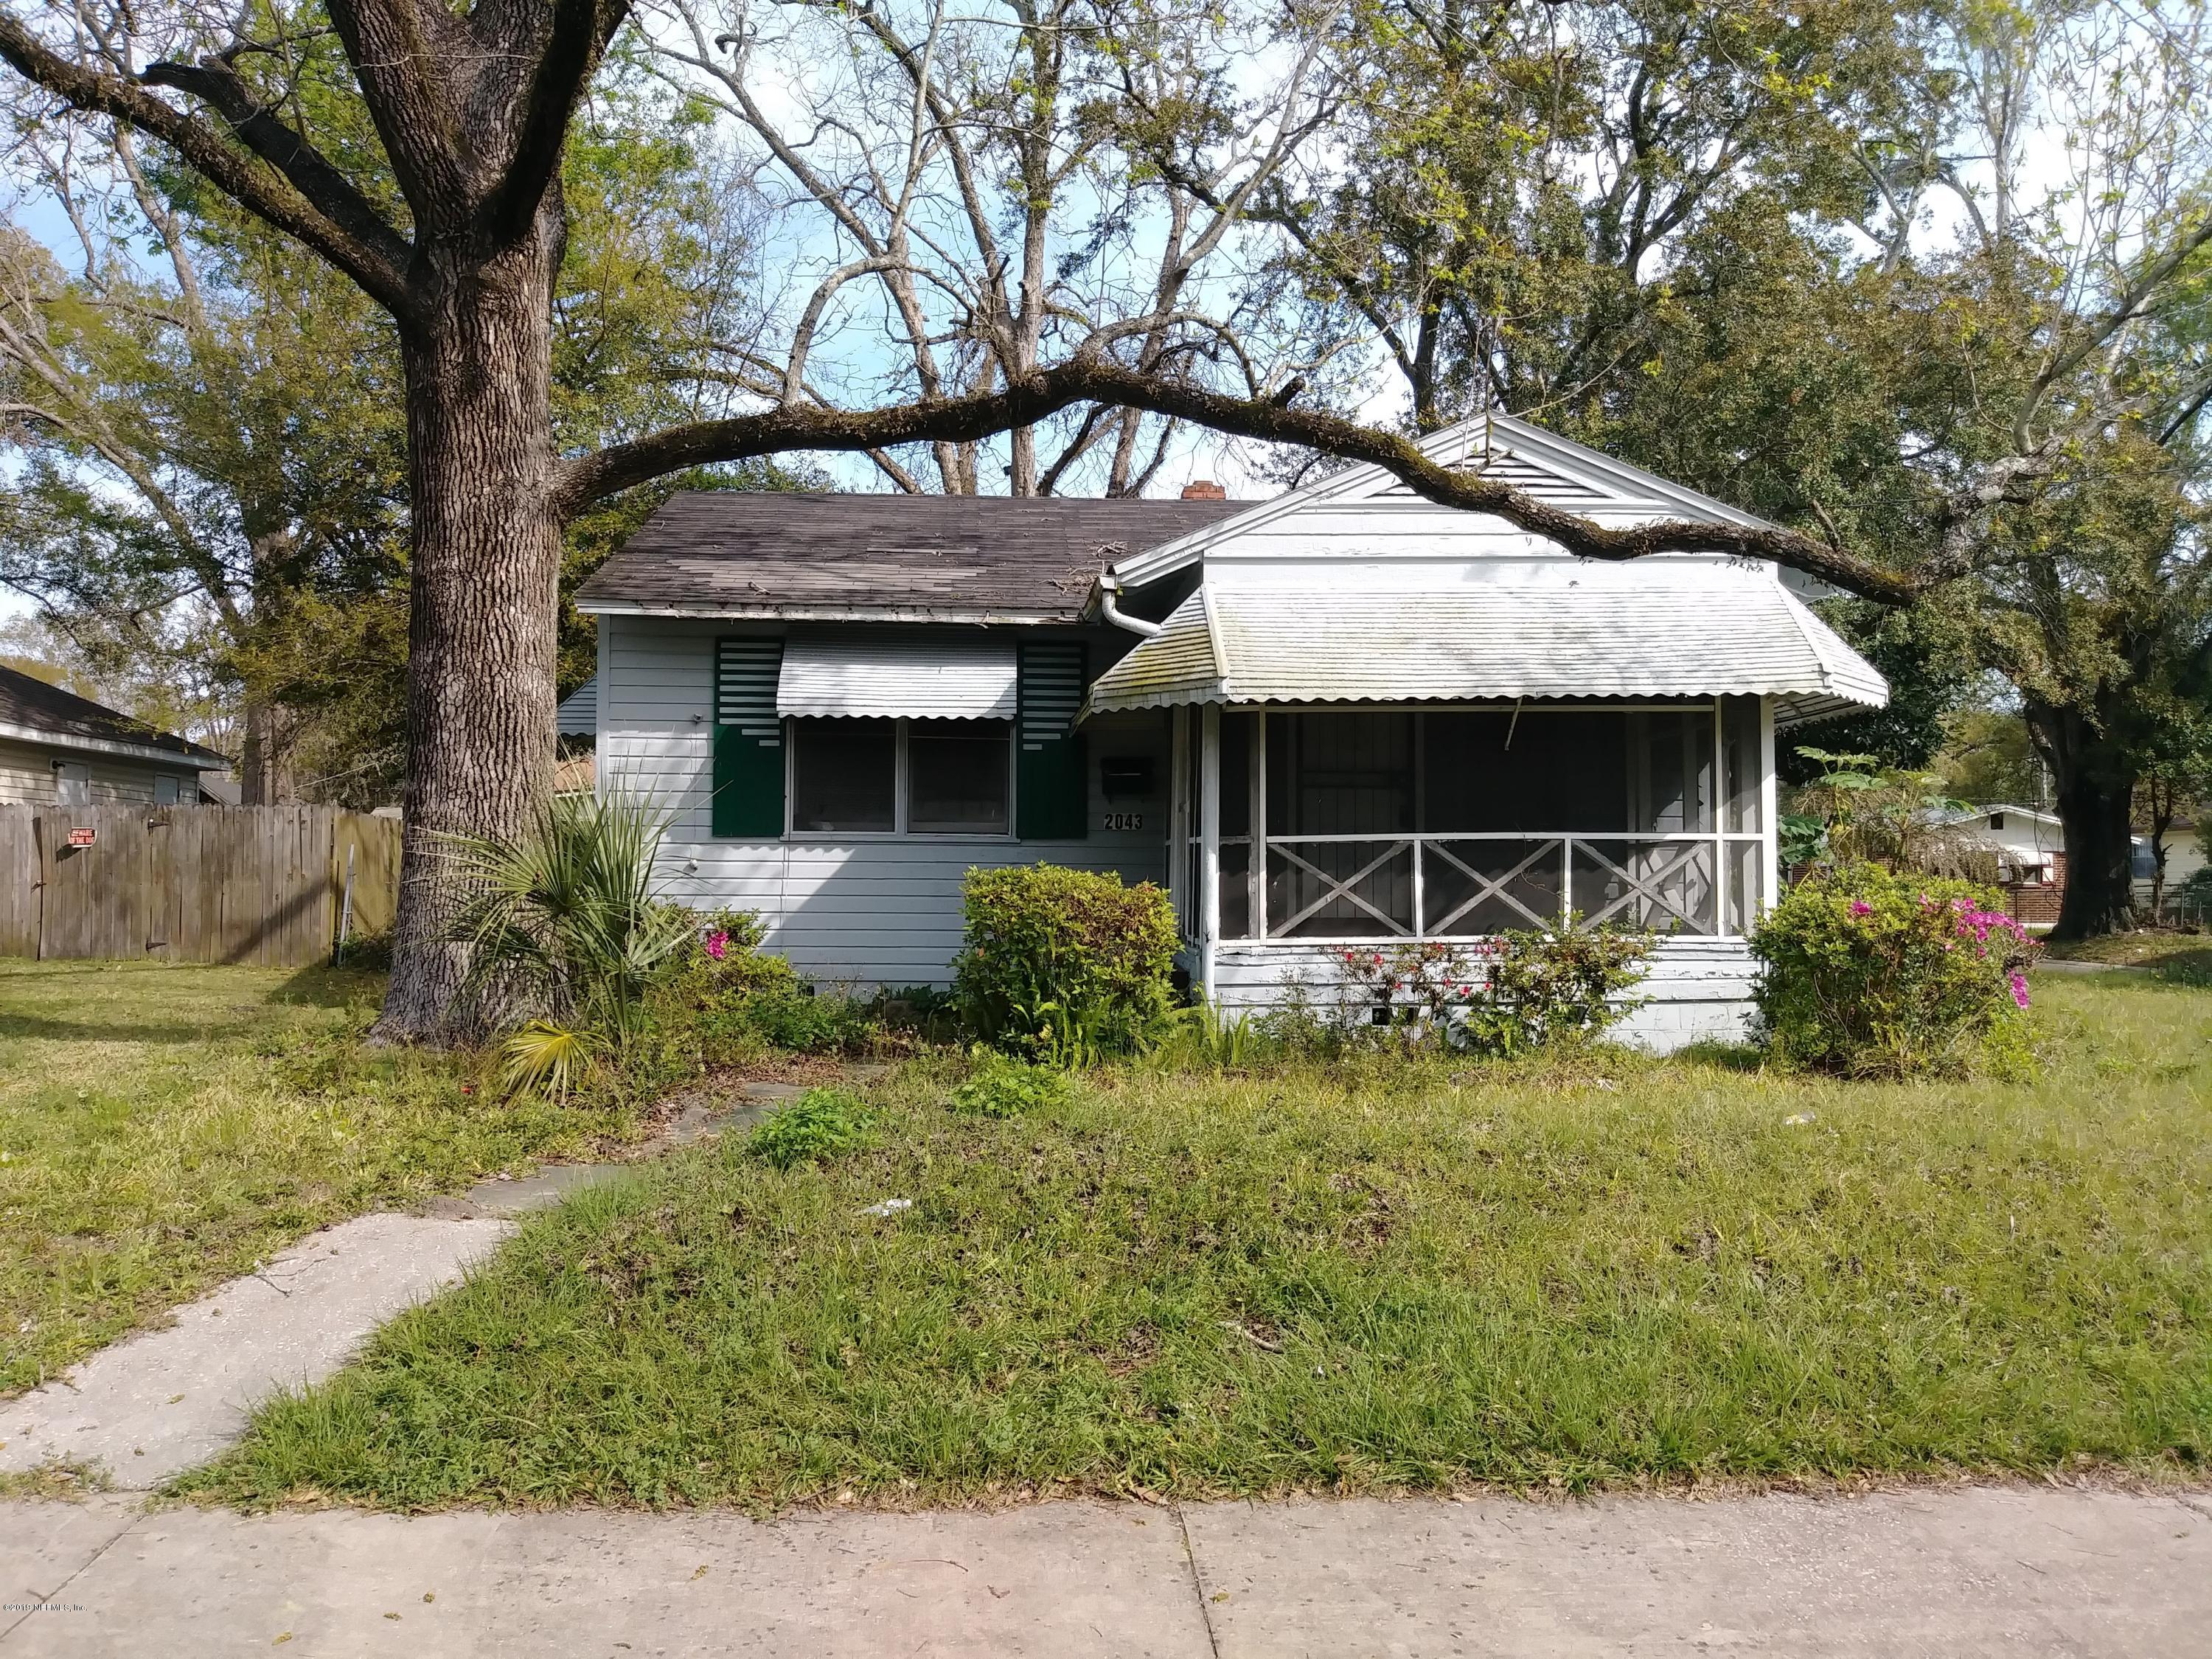 2043 15TH, JACKSONVILLE, FLORIDA 32209, 2 Bedrooms Bedrooms, ,1 BathroomBathrooms,Investment / MultiFamily,For sale,15TH,1012674